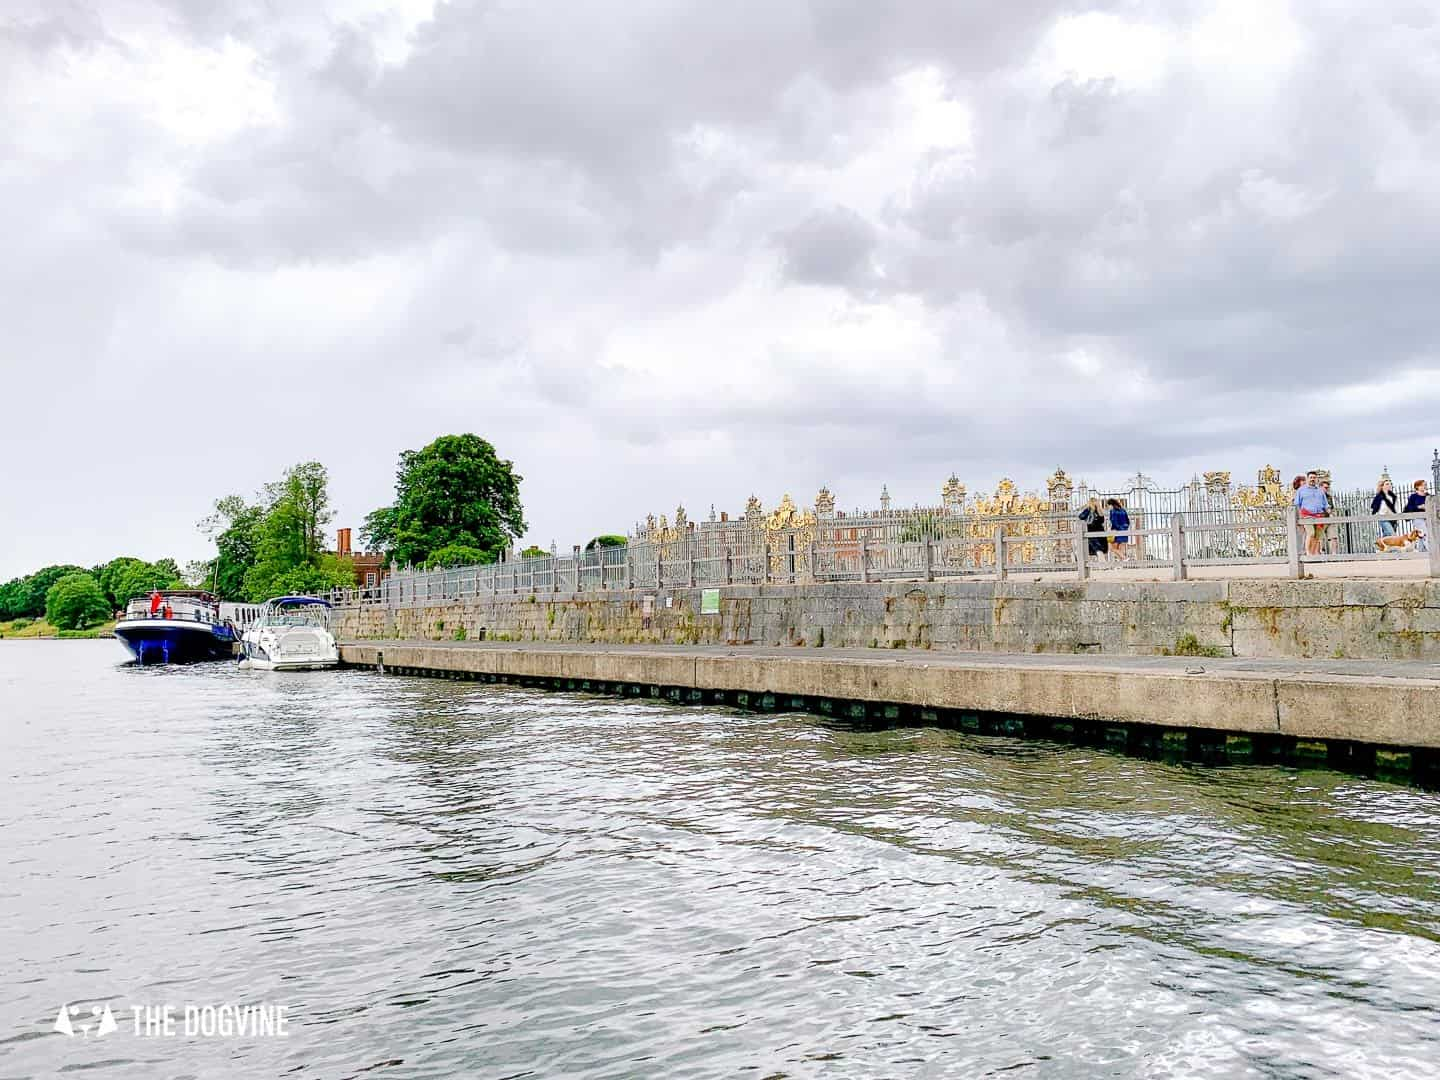 Dog-friendly Go Boat Kingston Upon Thames 42